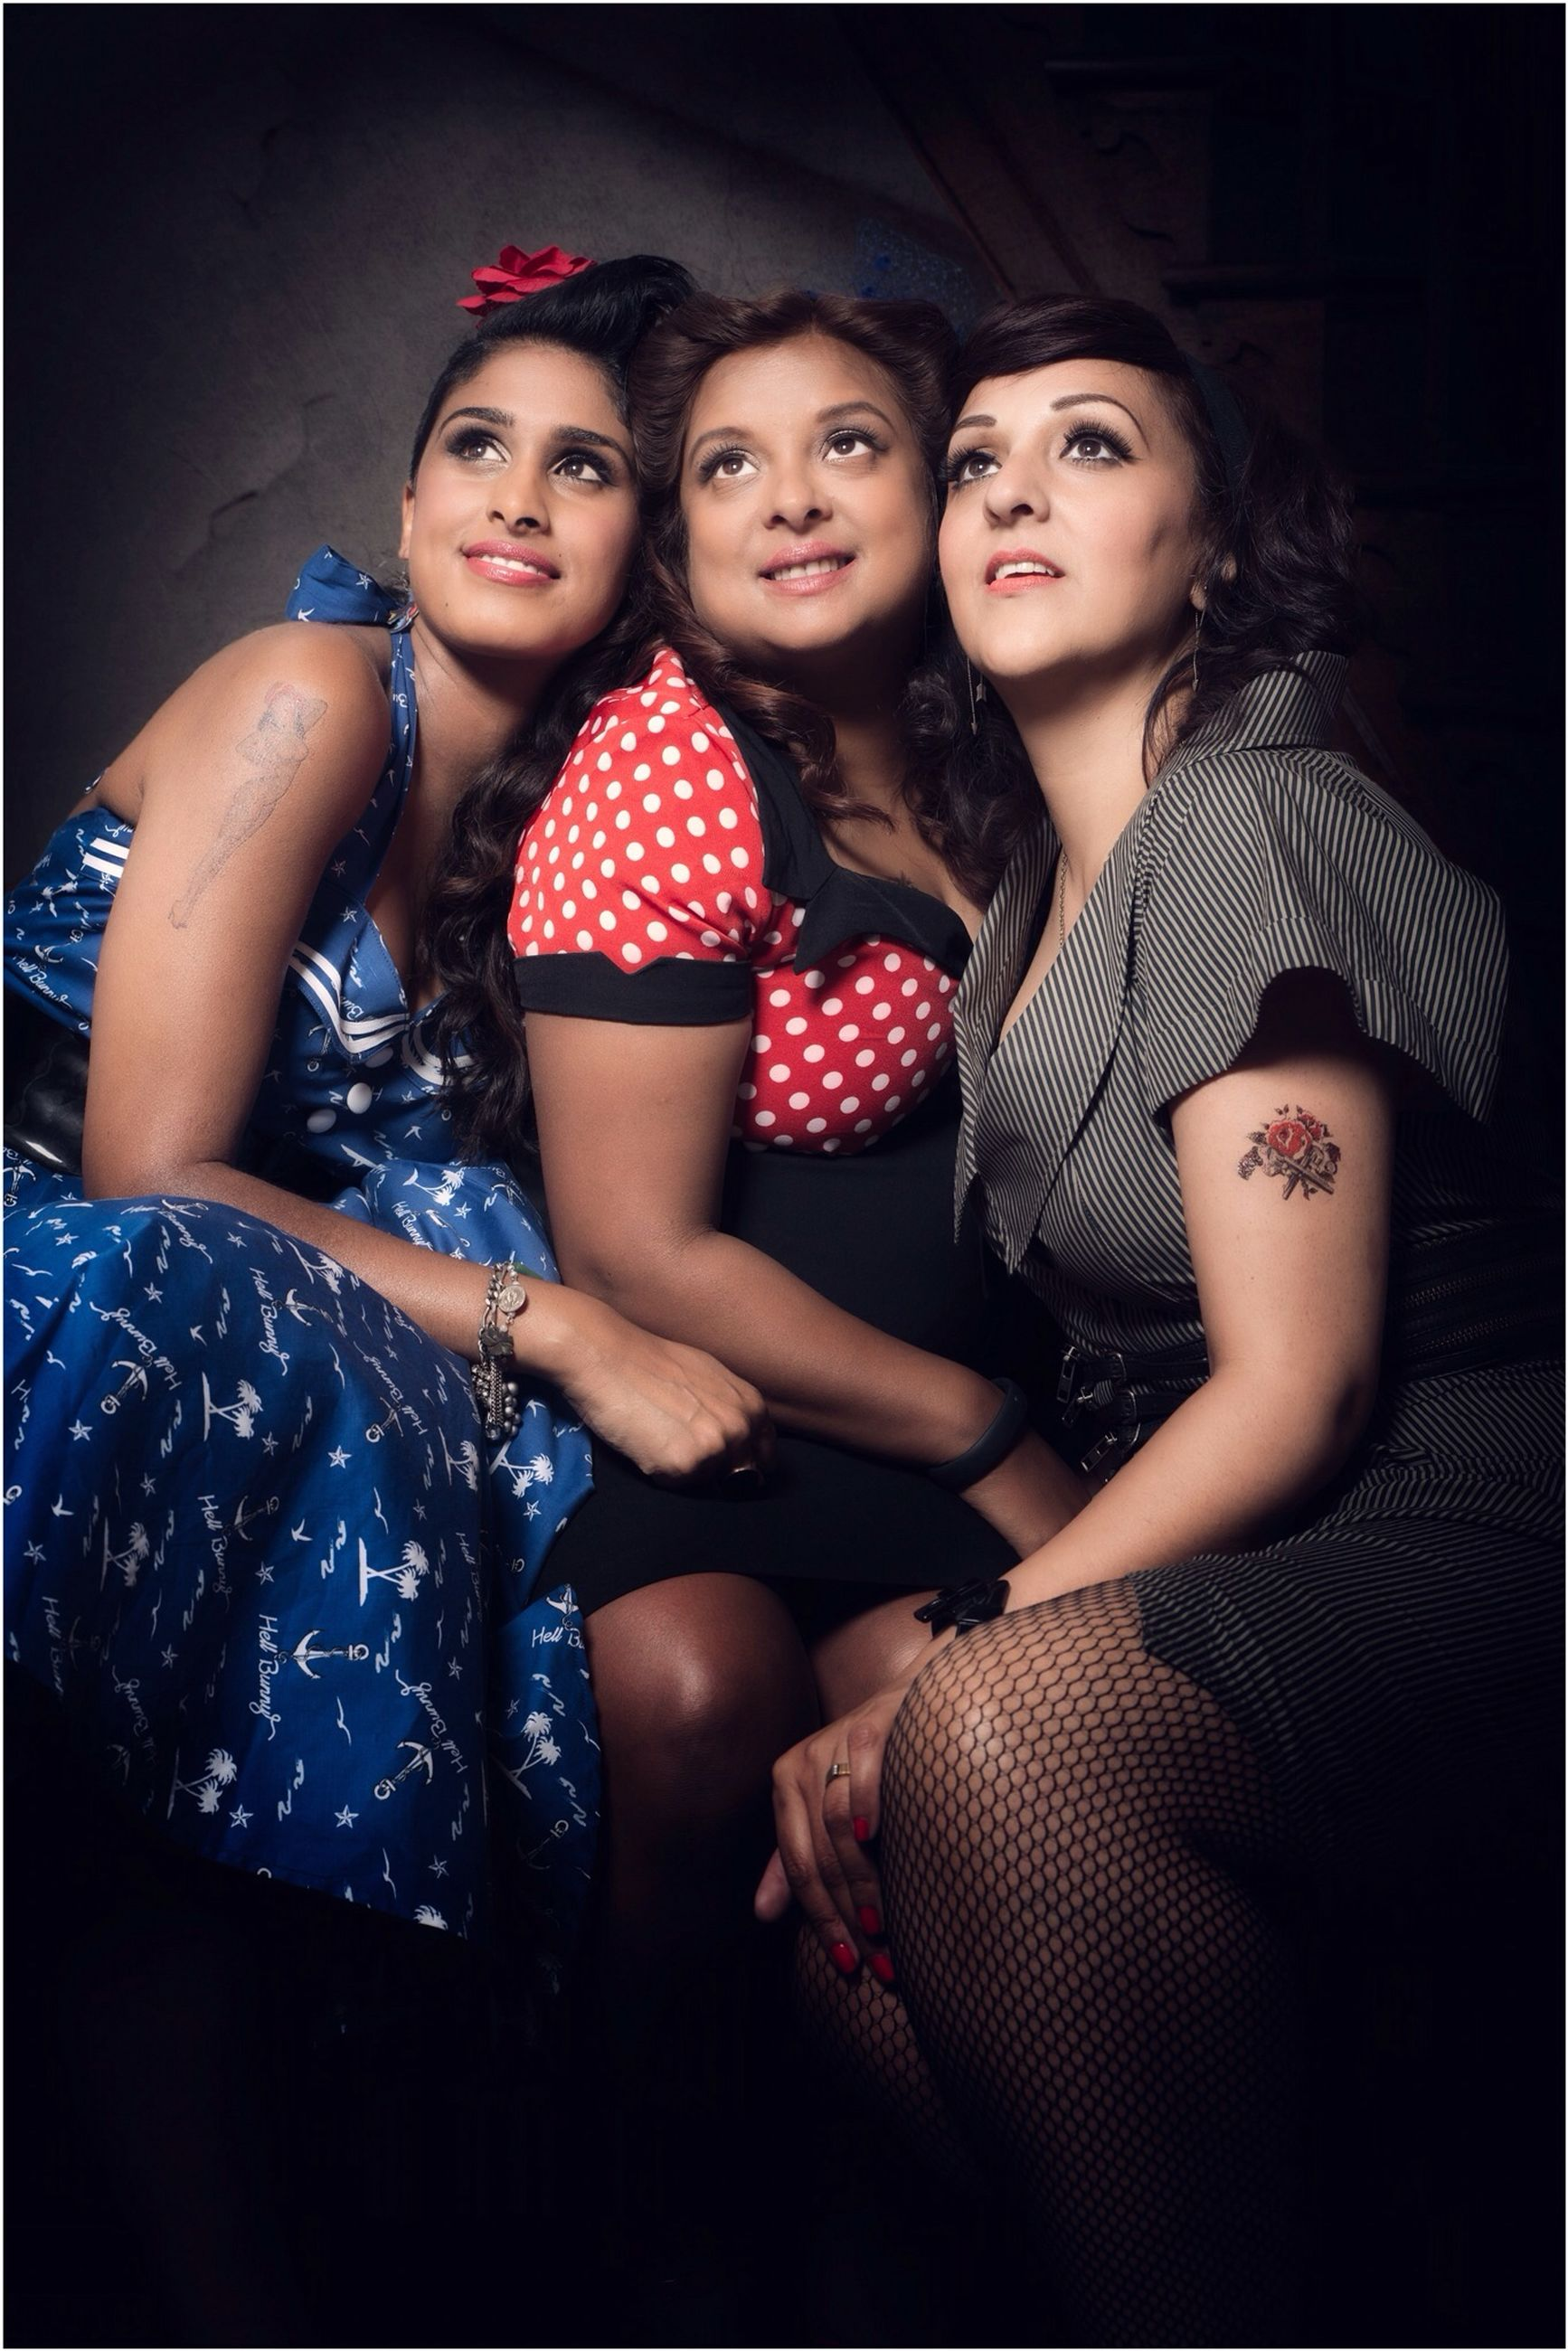 togetherness, lifestyles, person, bonding, young adult, portrait, leisure activity, looking at camera, young women, front view, love, casual clothing, smiling, happiness, indoors, full length, family